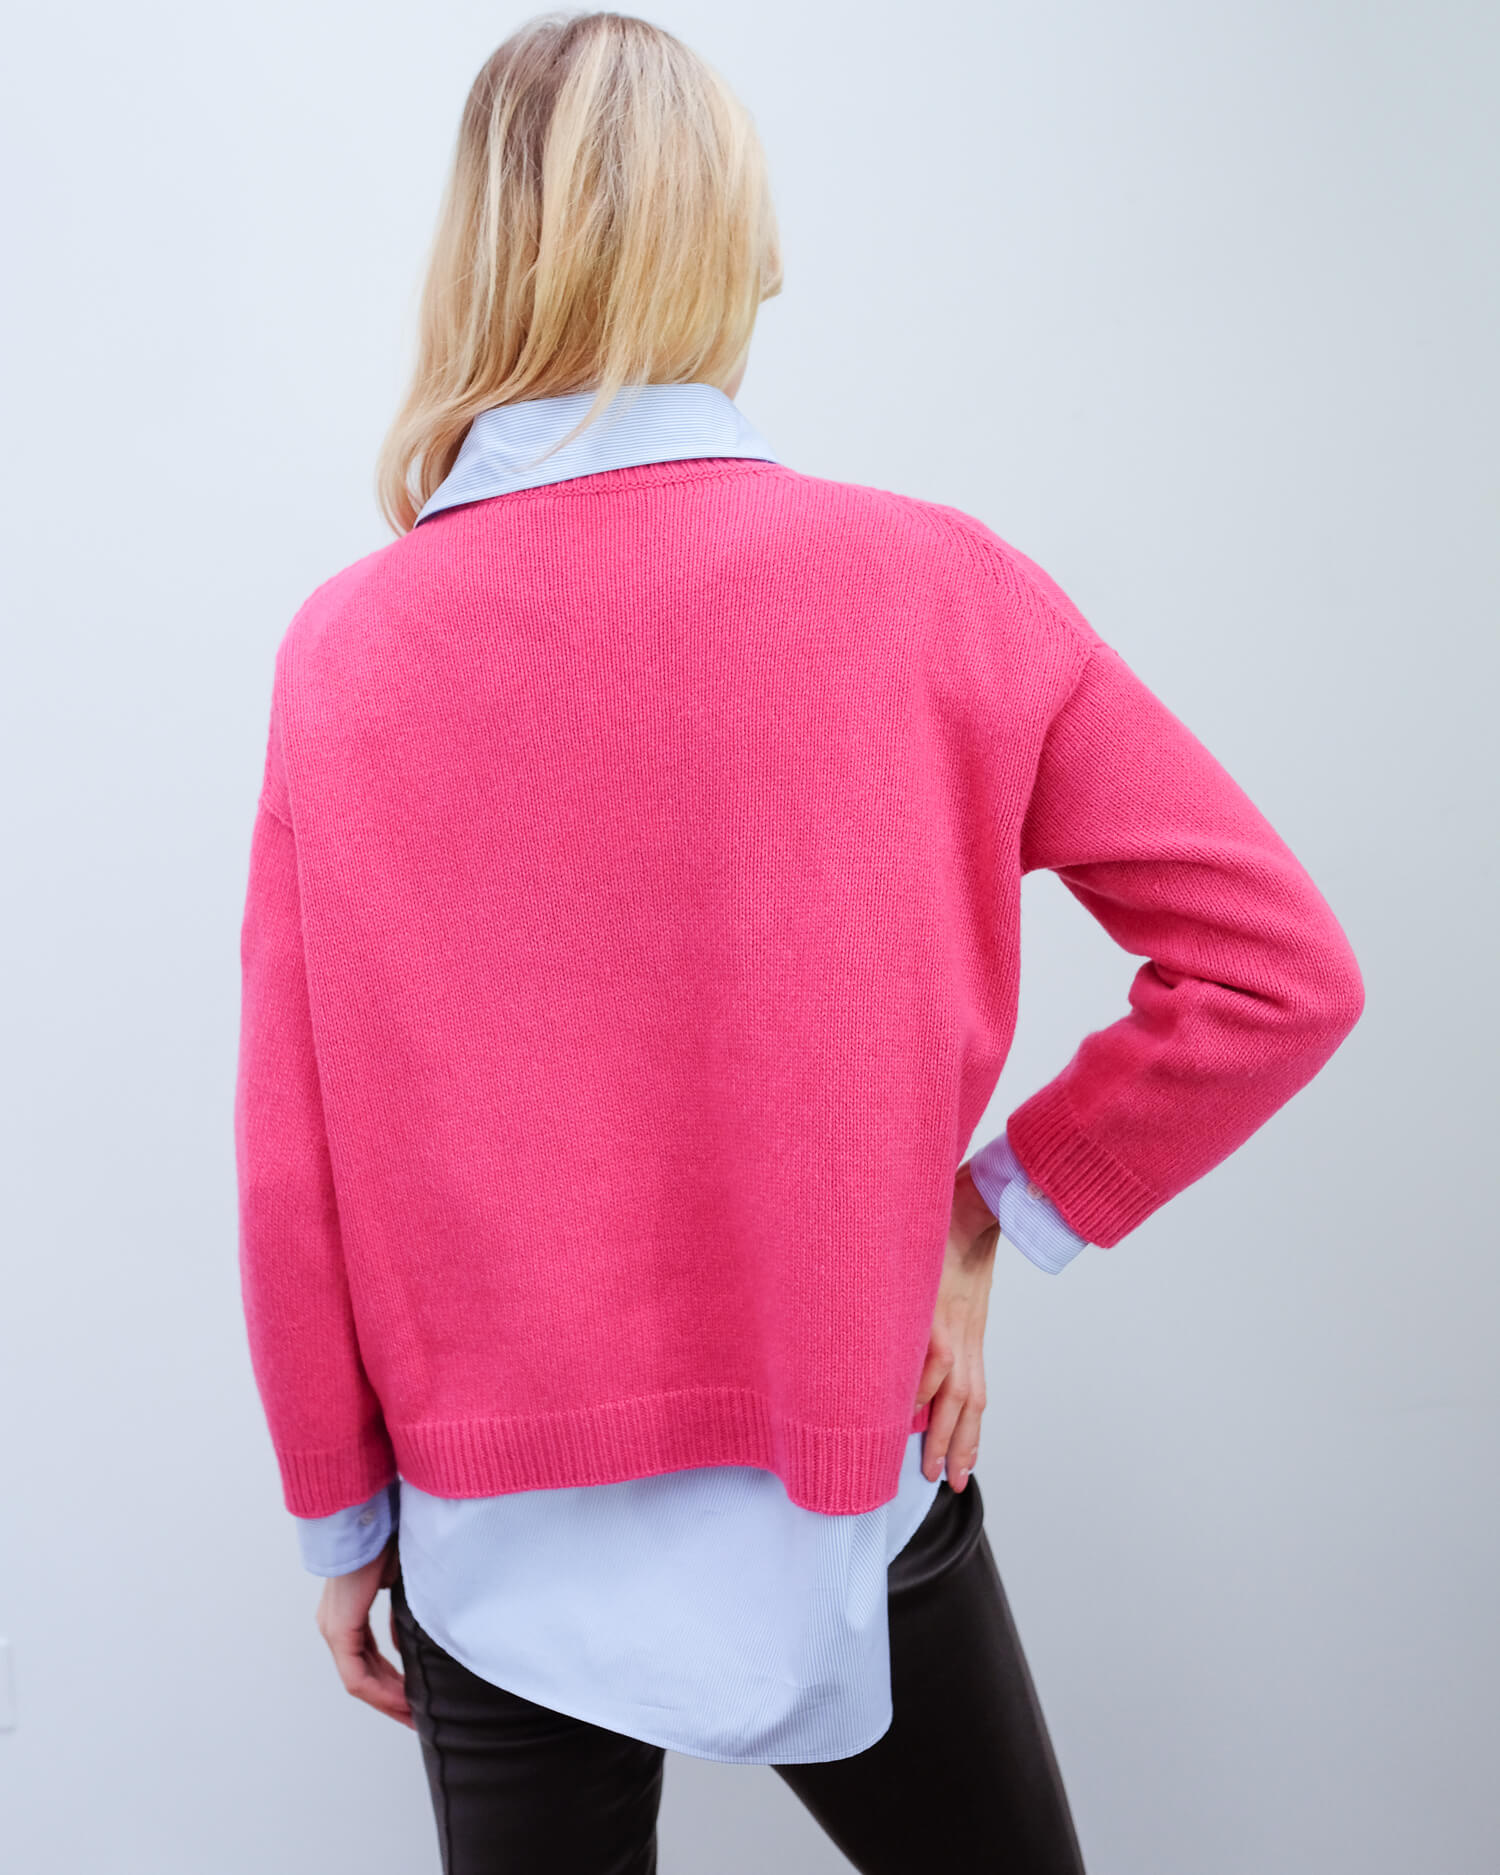 MM Zoraide cashmere knit in red